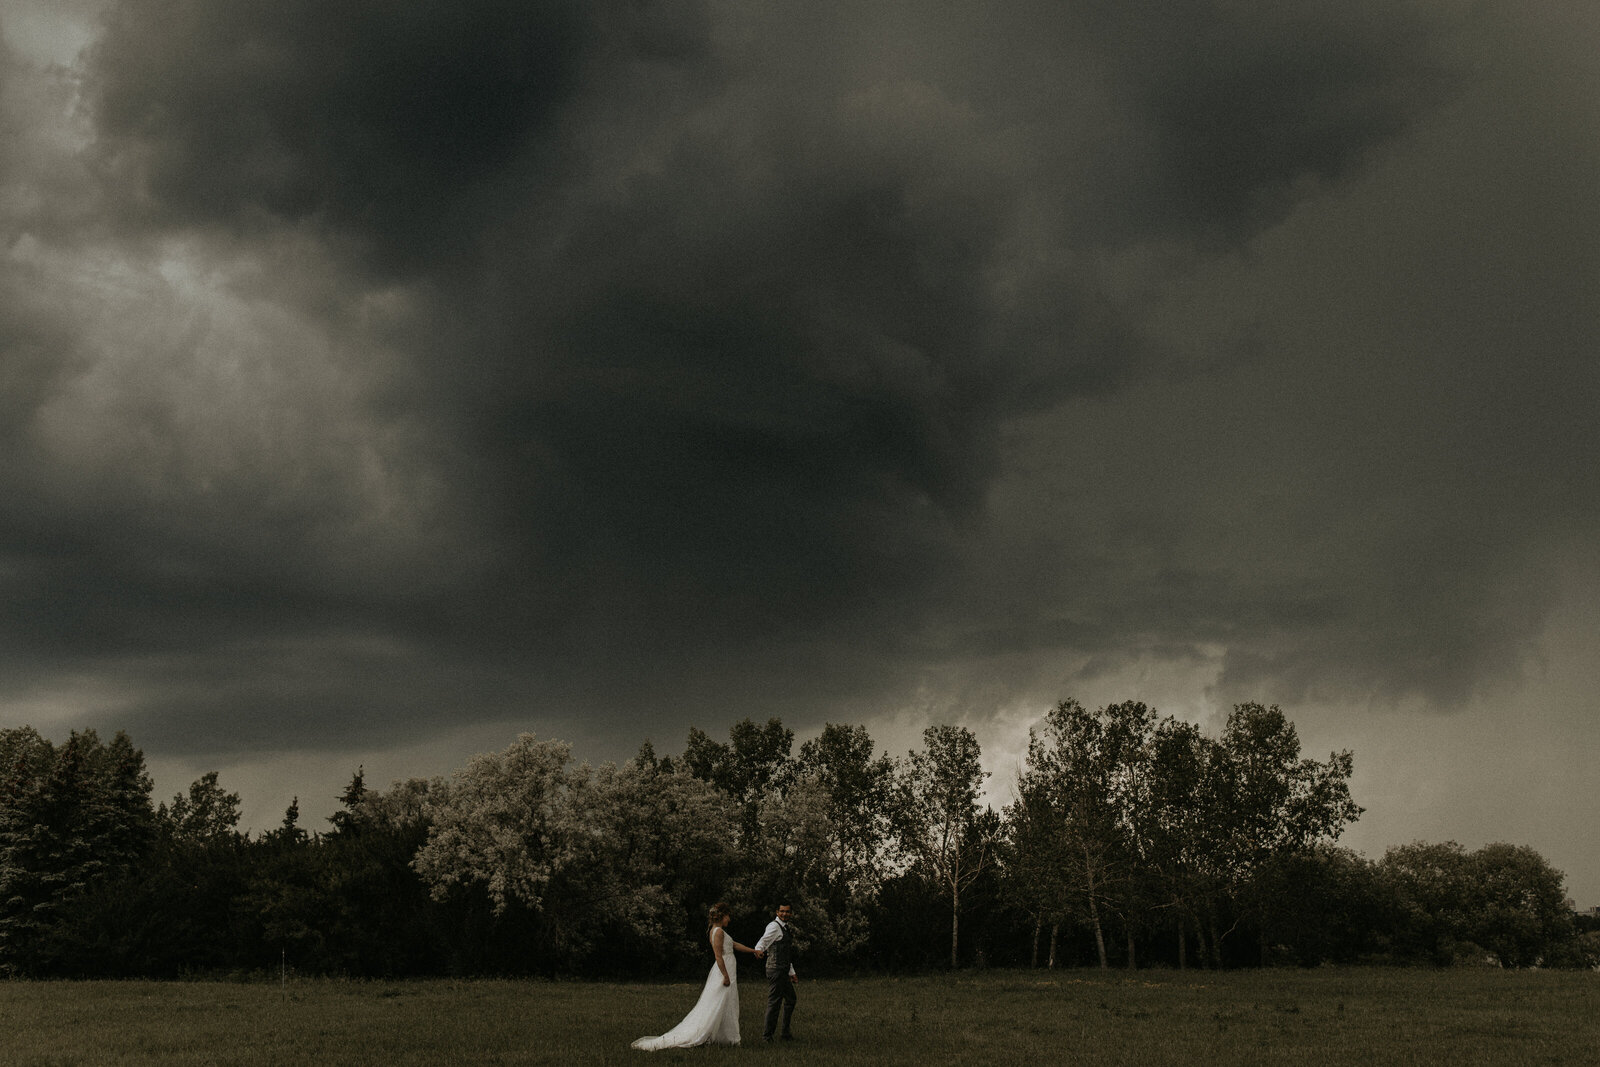 Kenzie-Tippe-Photography-Wedding-Photography-32